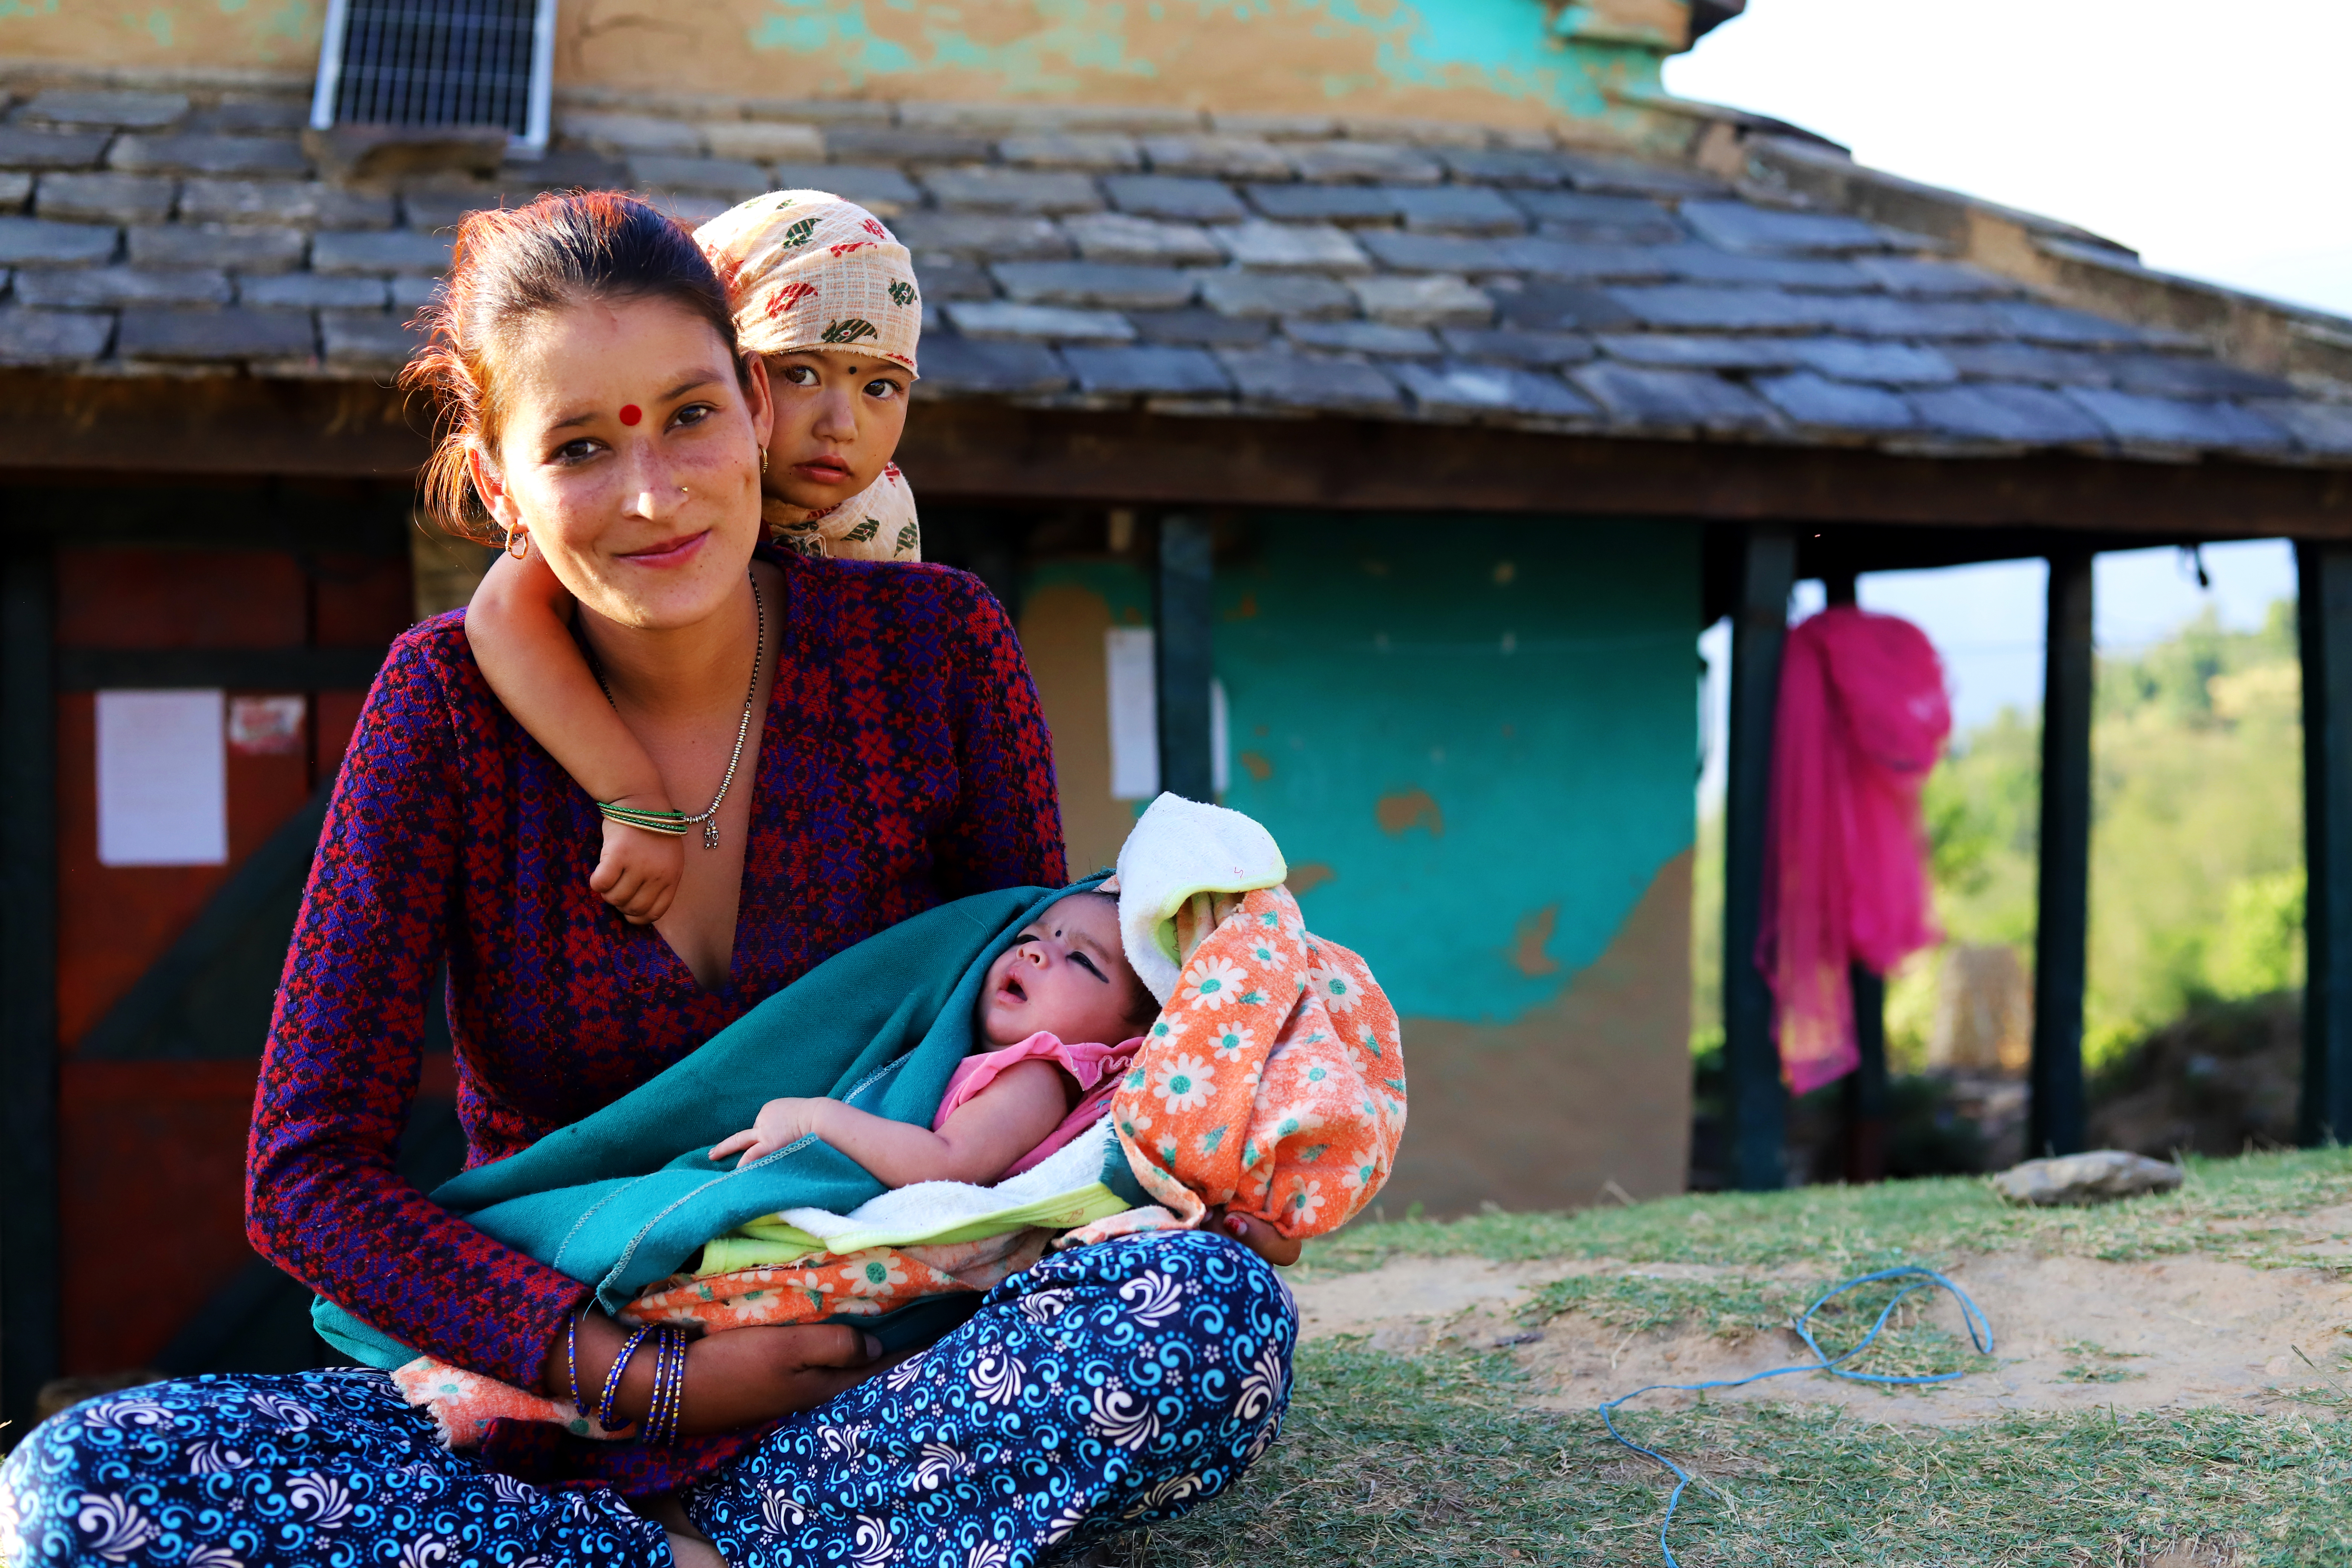 Young Girls in rural Nepal are choosing early marriage to escape poverty and discrimination